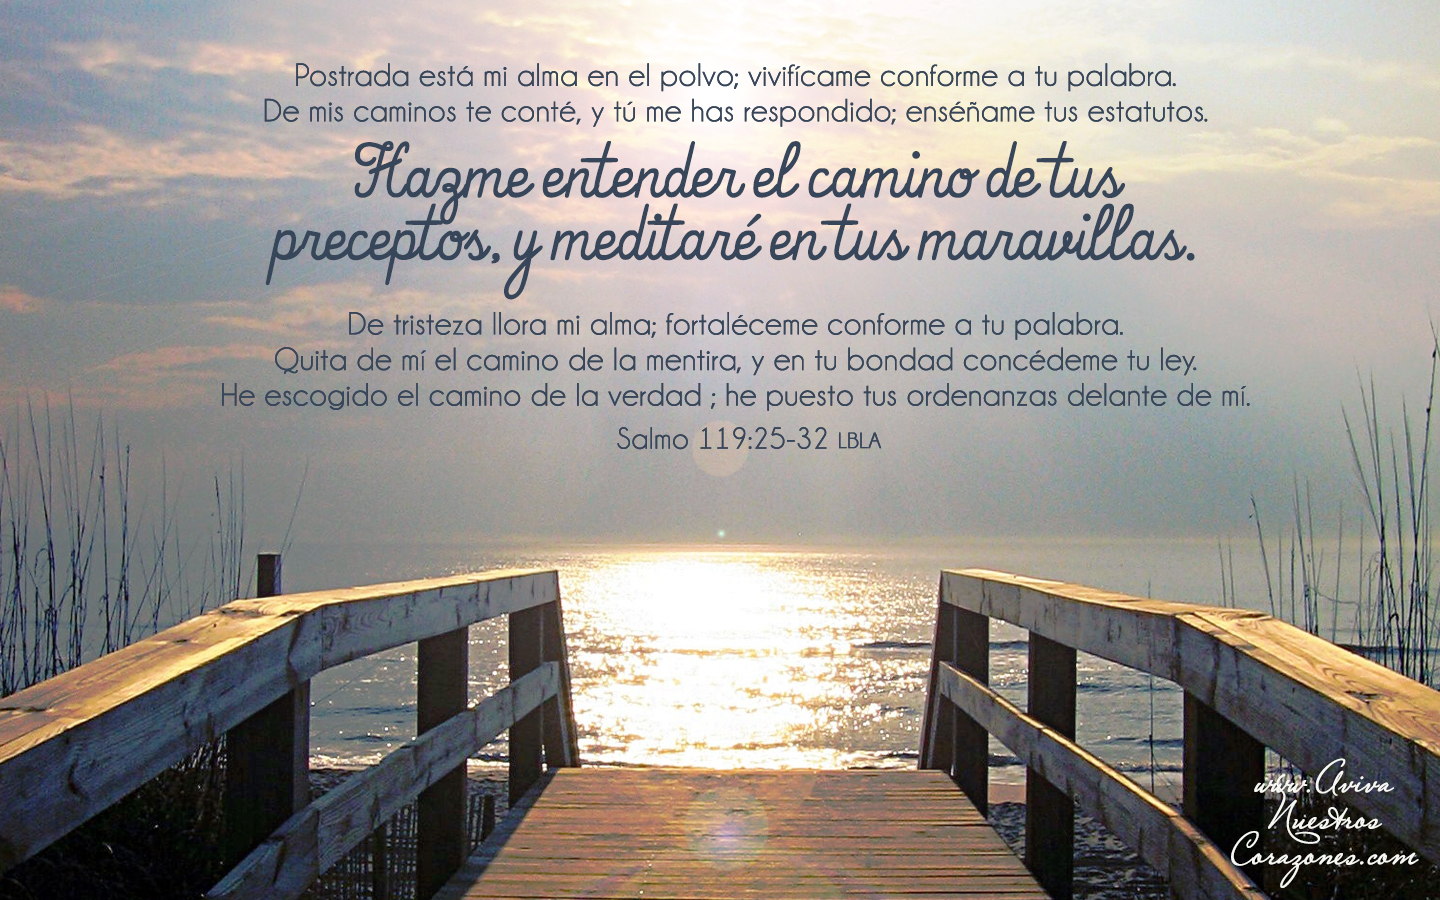 Christian Hd Wallpapers For Android Abr 14 Salmo 119 25 32 Wallpapers Aviva Nuestros